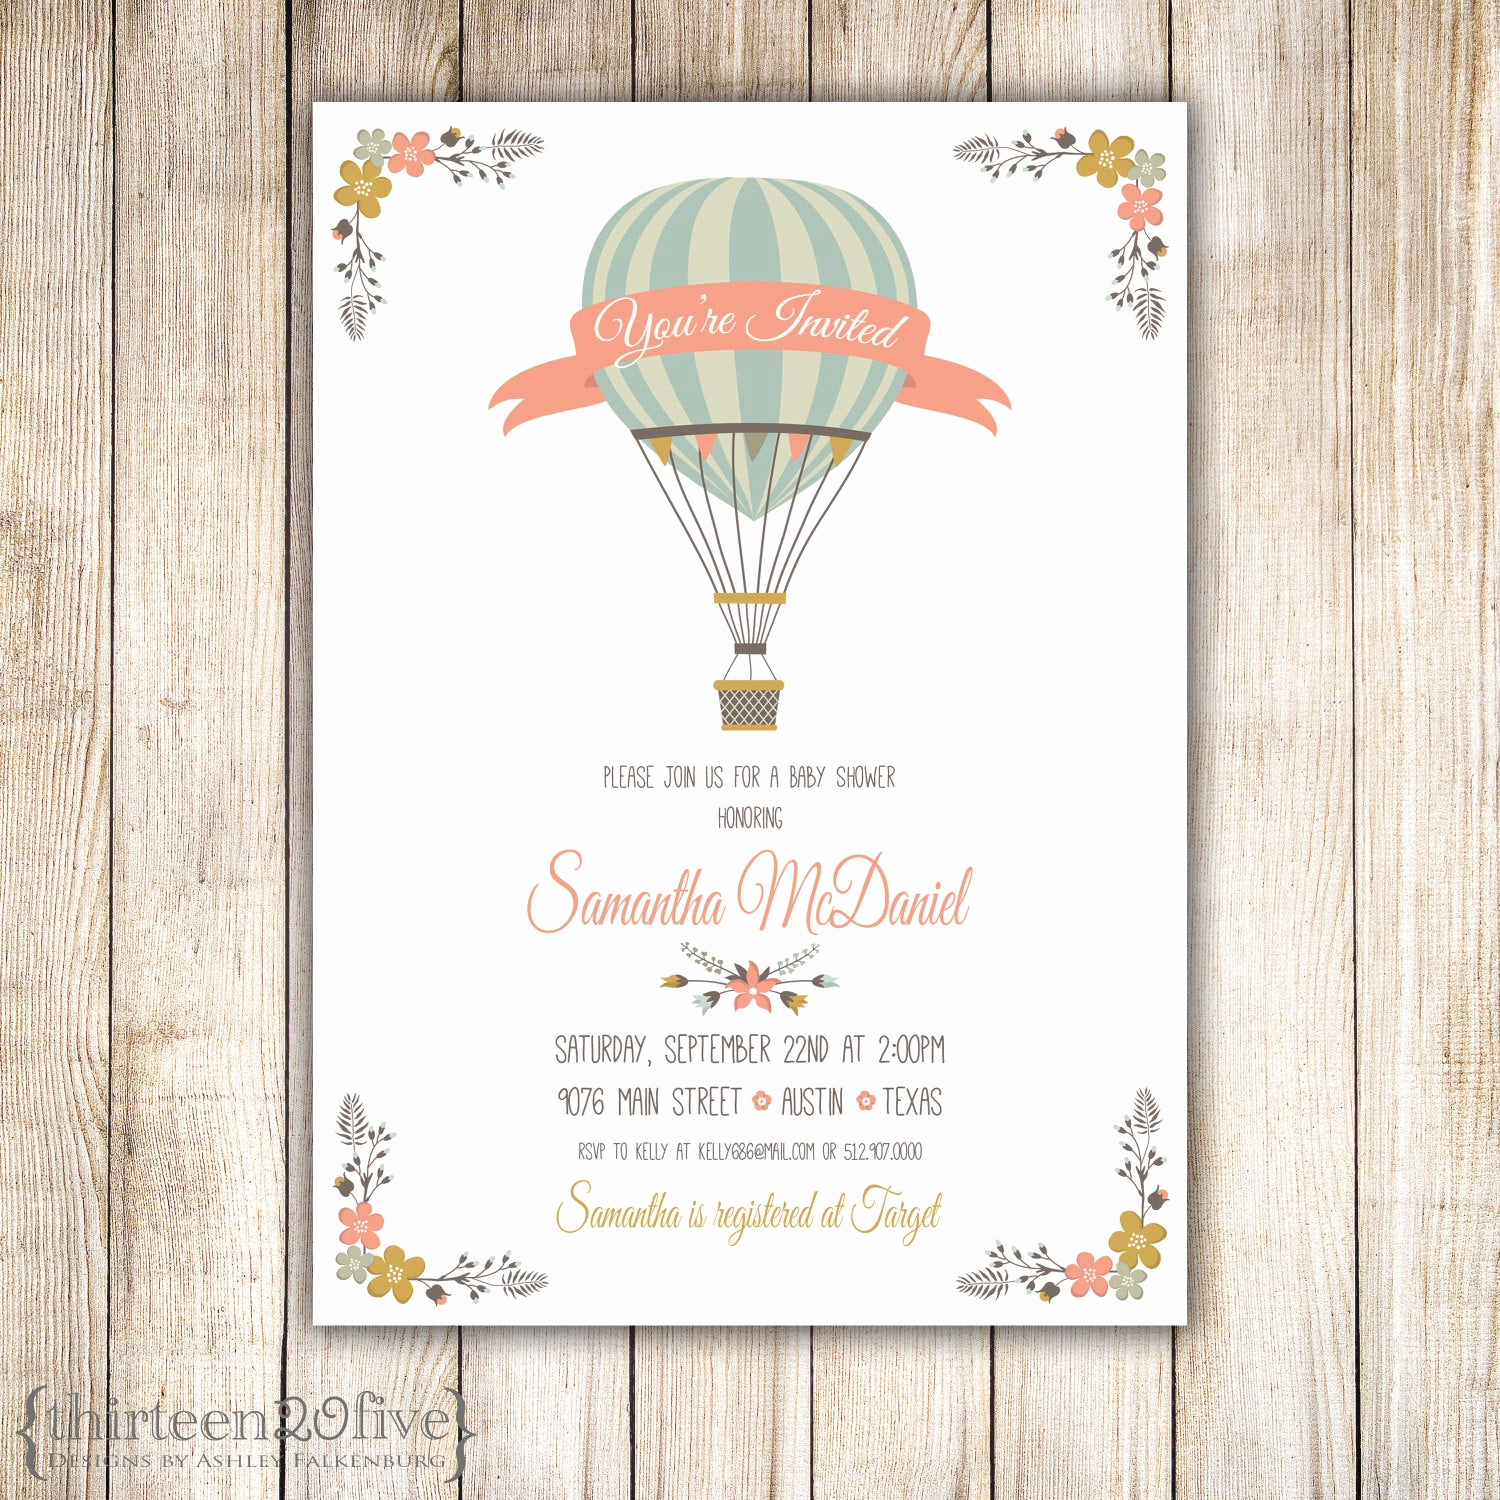 Hot Air Balloon Invitation Unique Hot Air Balloon Baby Shower Invitation Diy 013